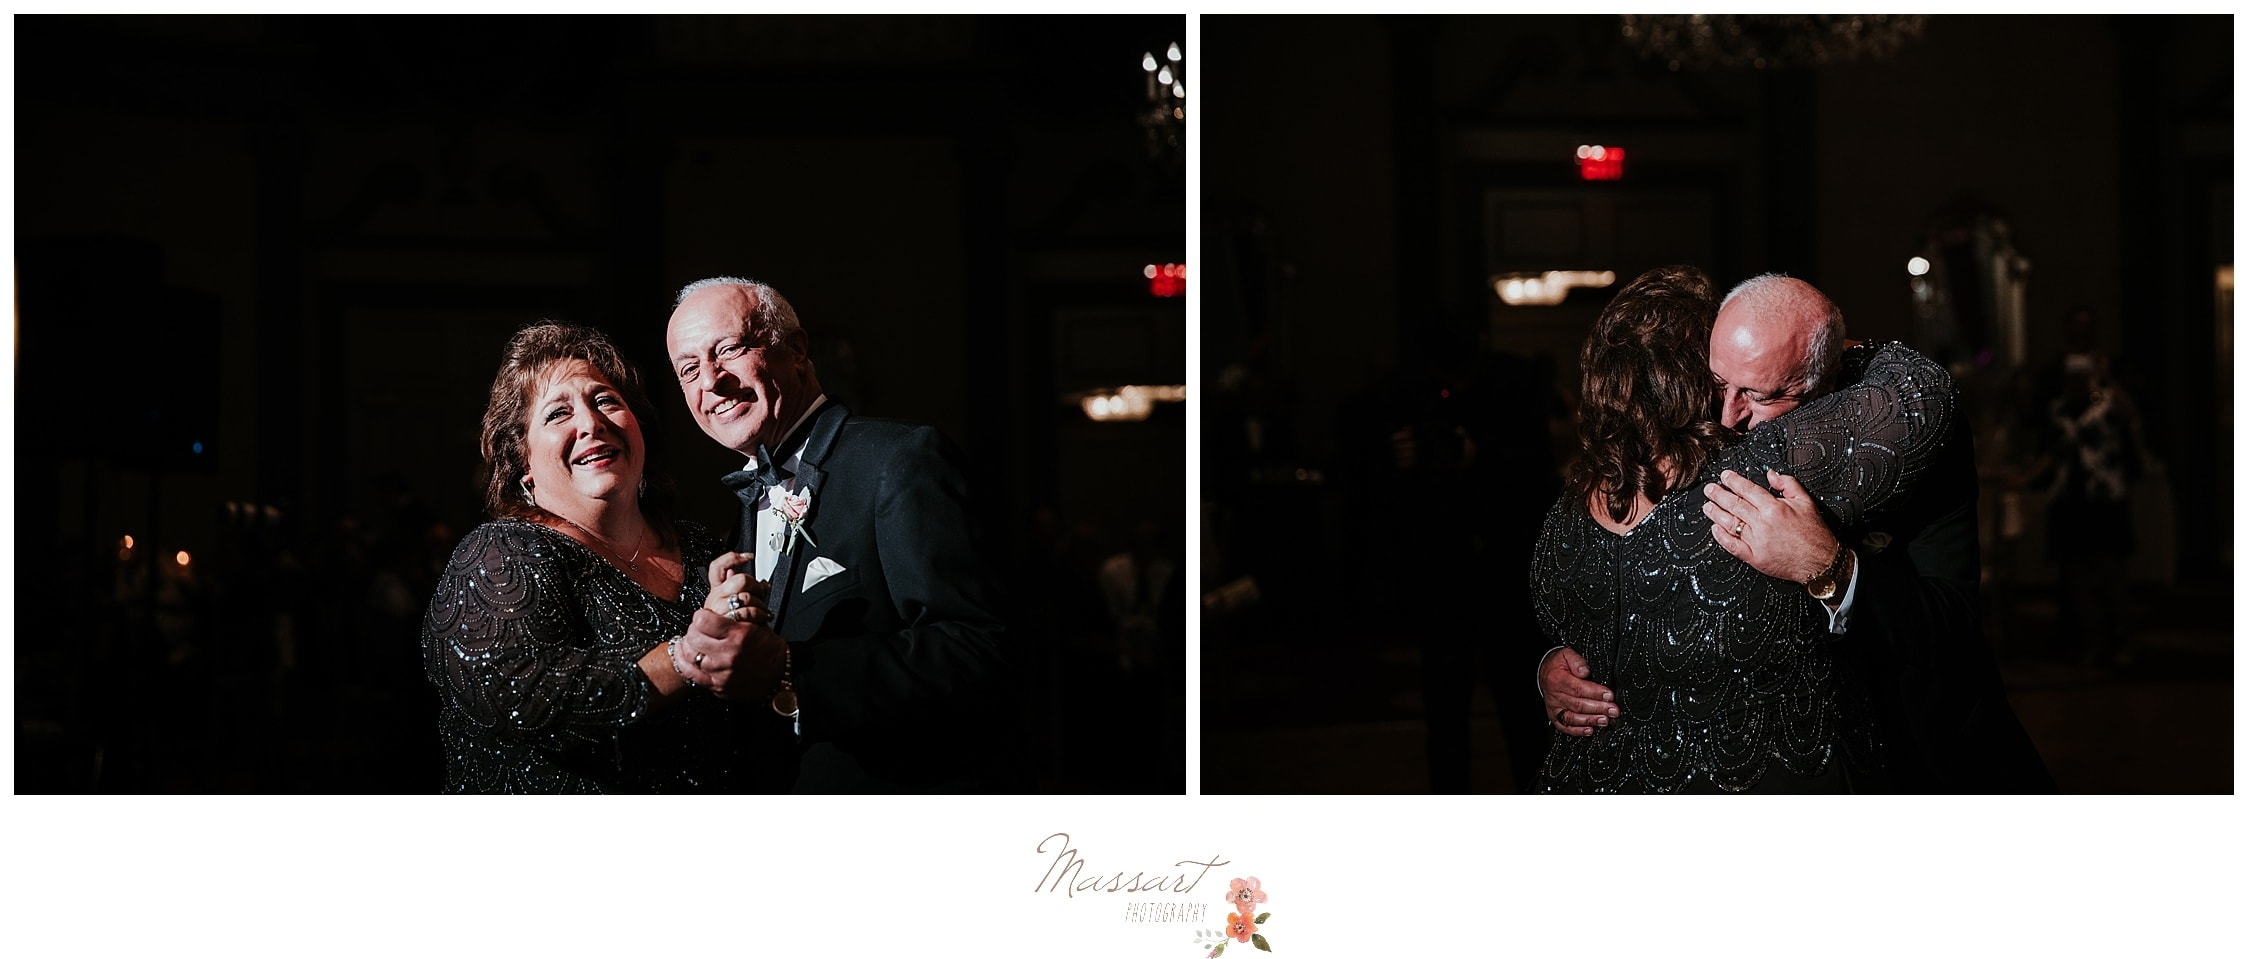 The parents of the bride share an emotional dance during their daughter's Biltmore wedding reception photographed by Massart Photography RI